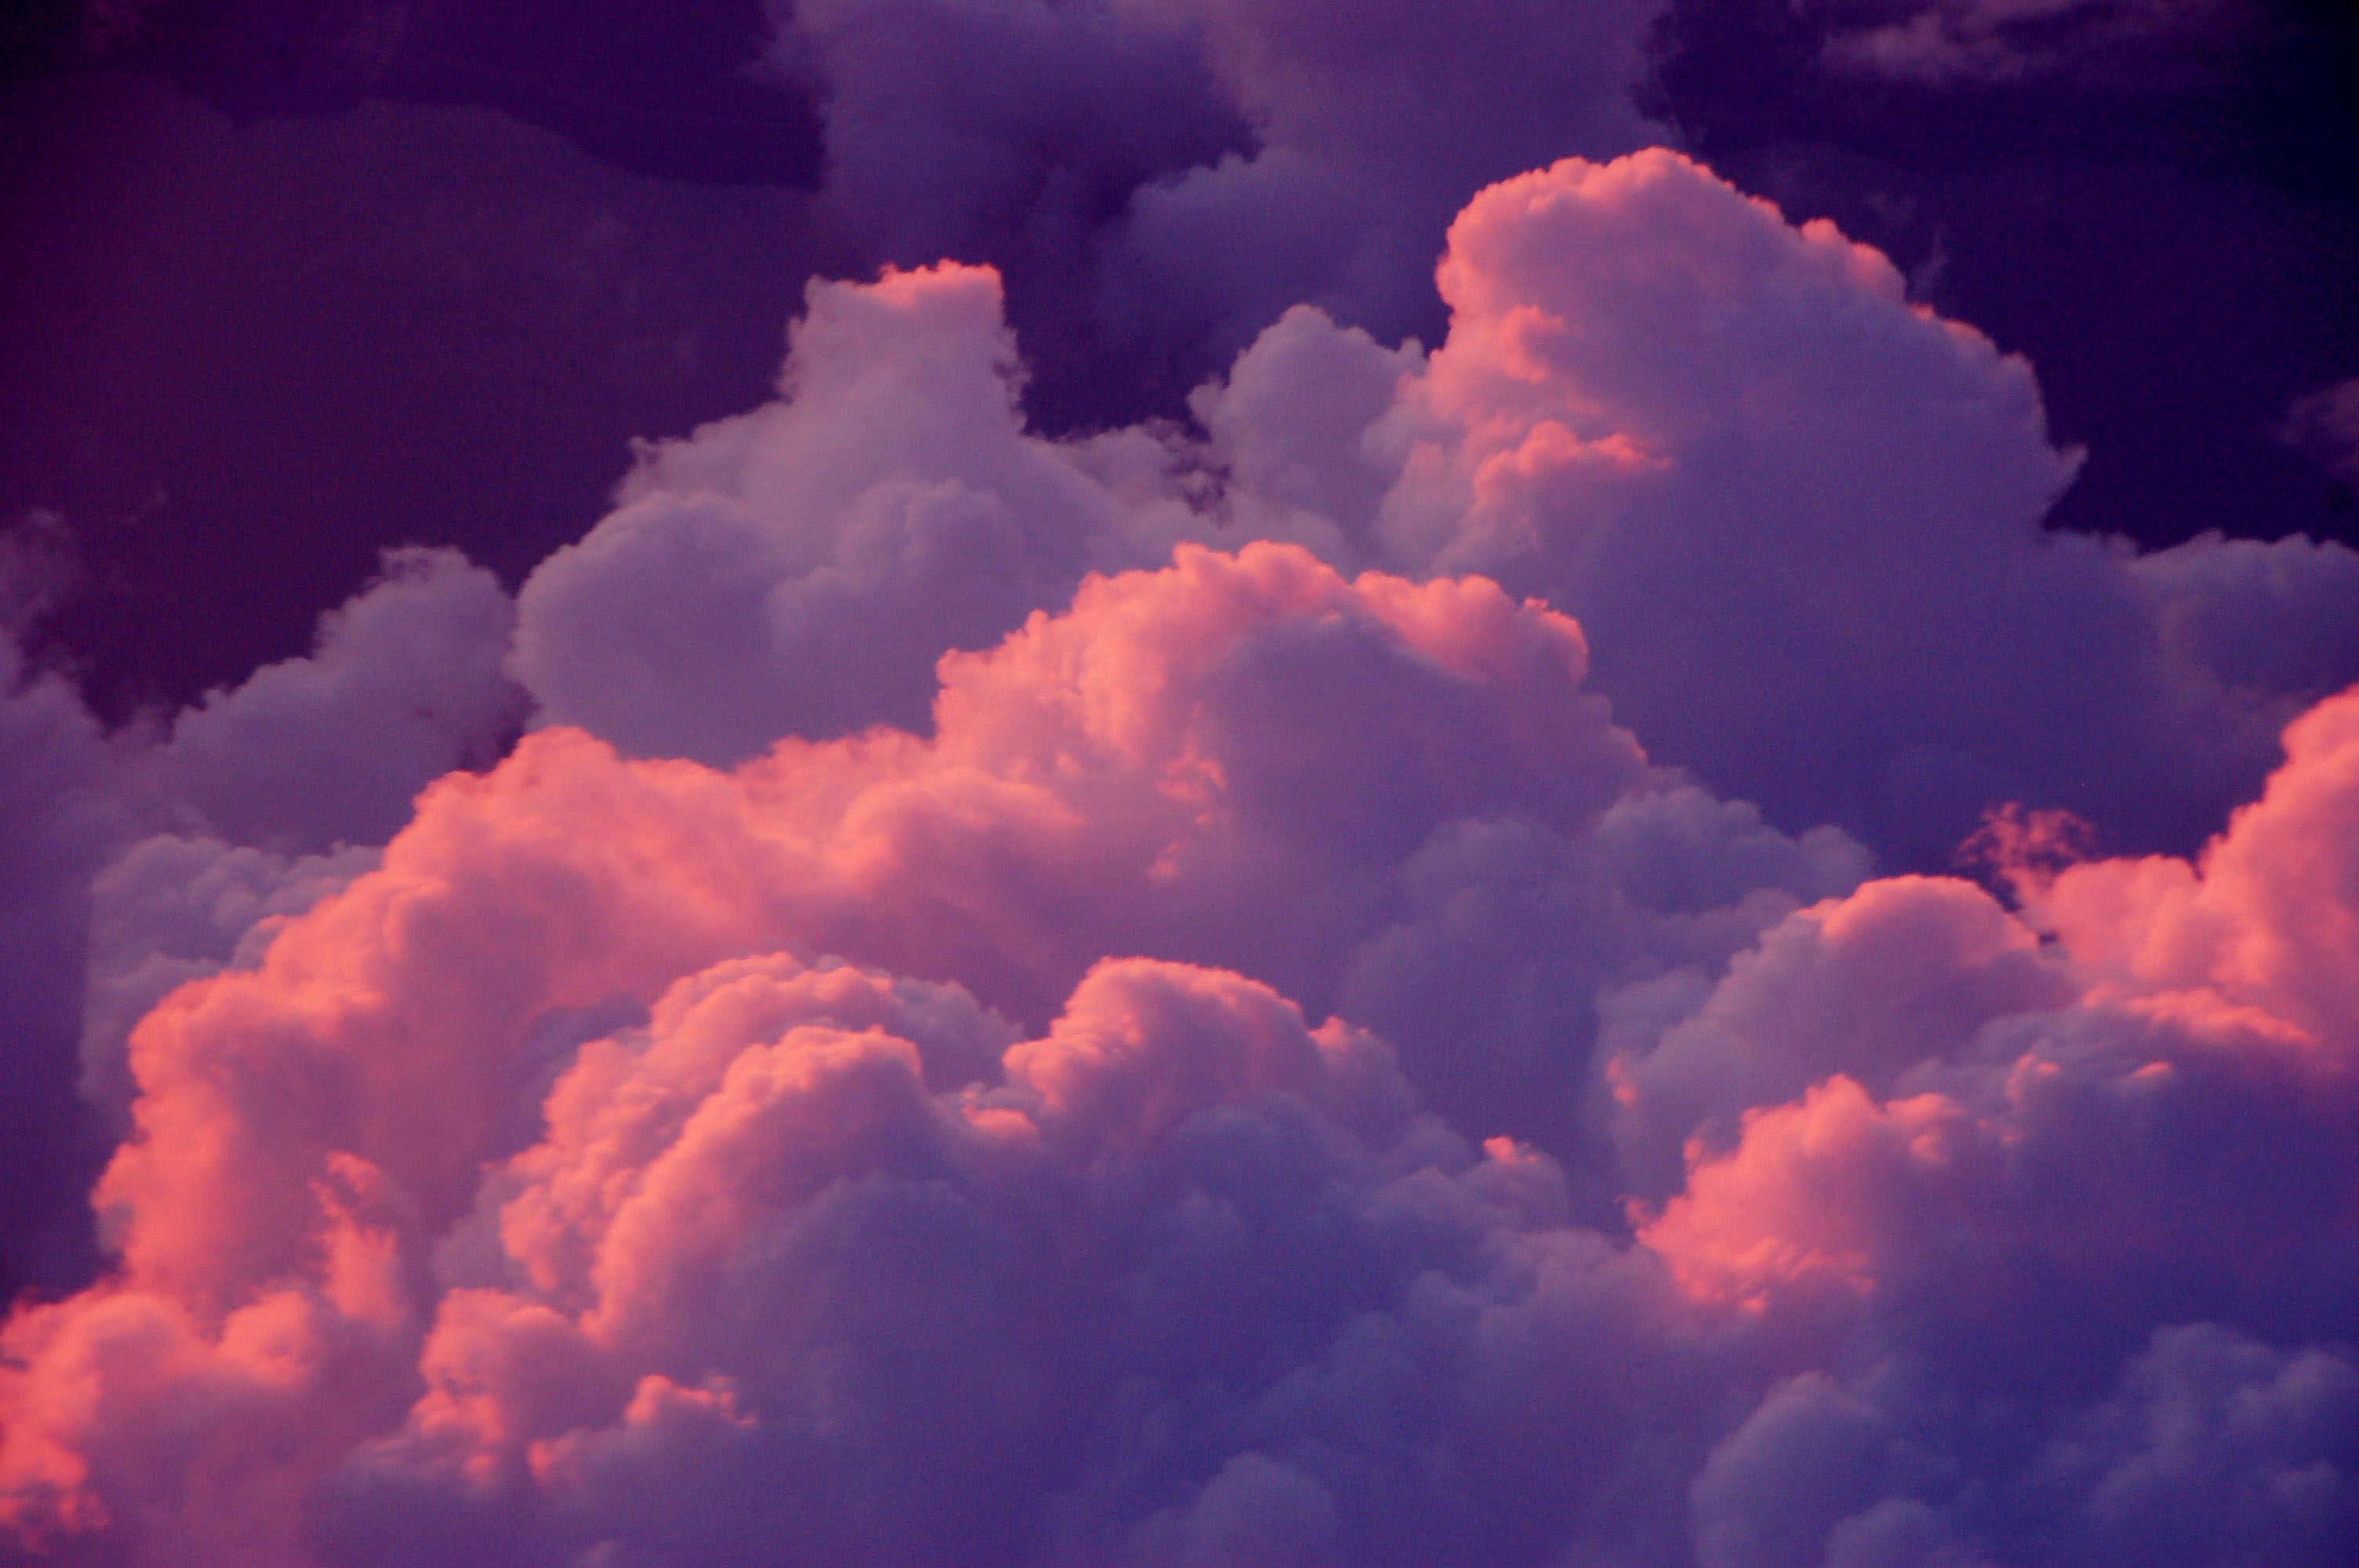 Pink Purple Clouds Pink Clouds Wallpaper Sky Aesthetic Aesthetic Wallpapers